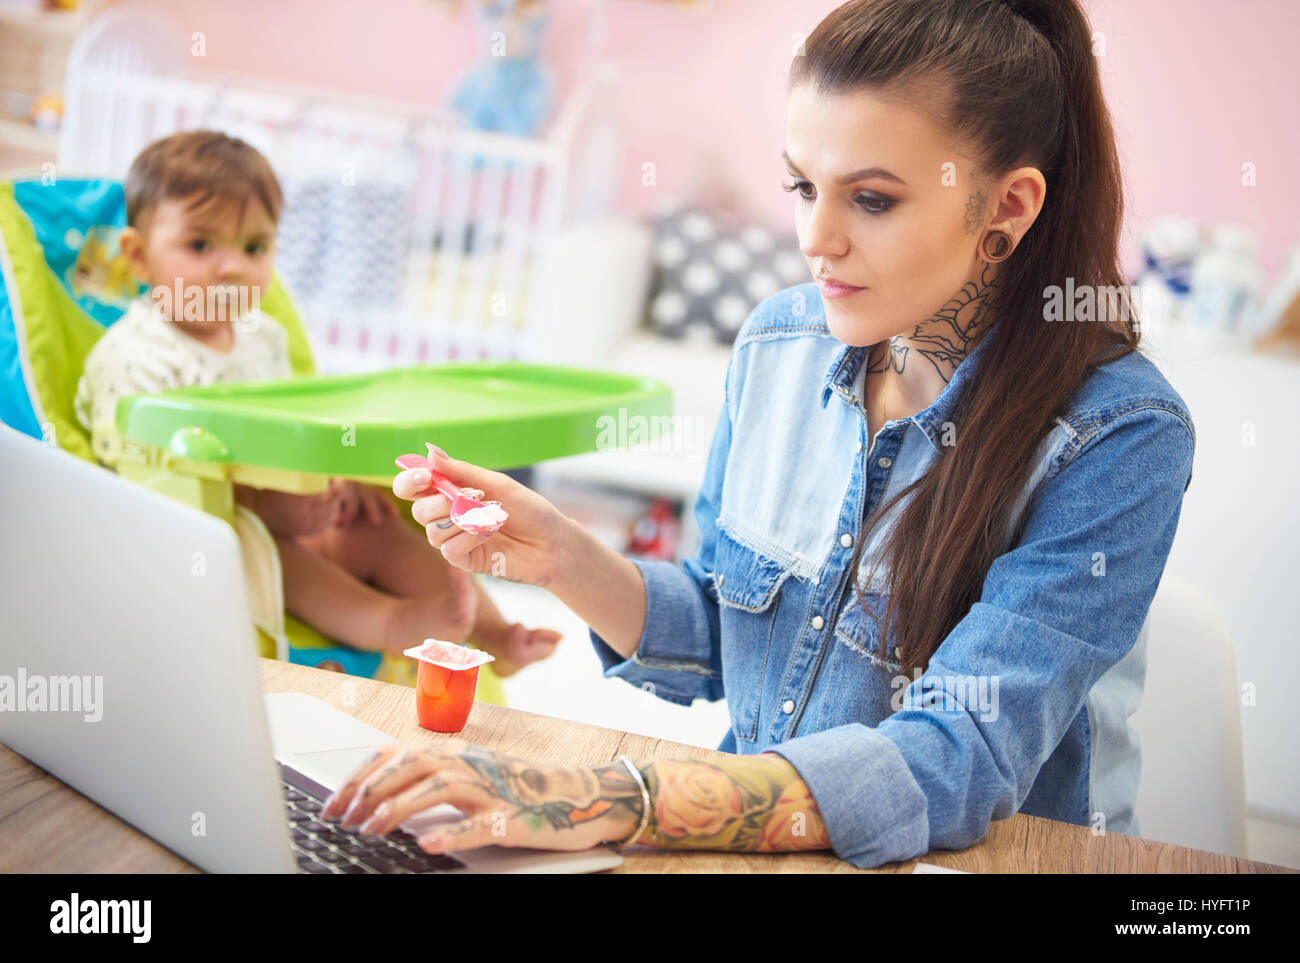 Young mother feeding her baby at home office - Stock Image